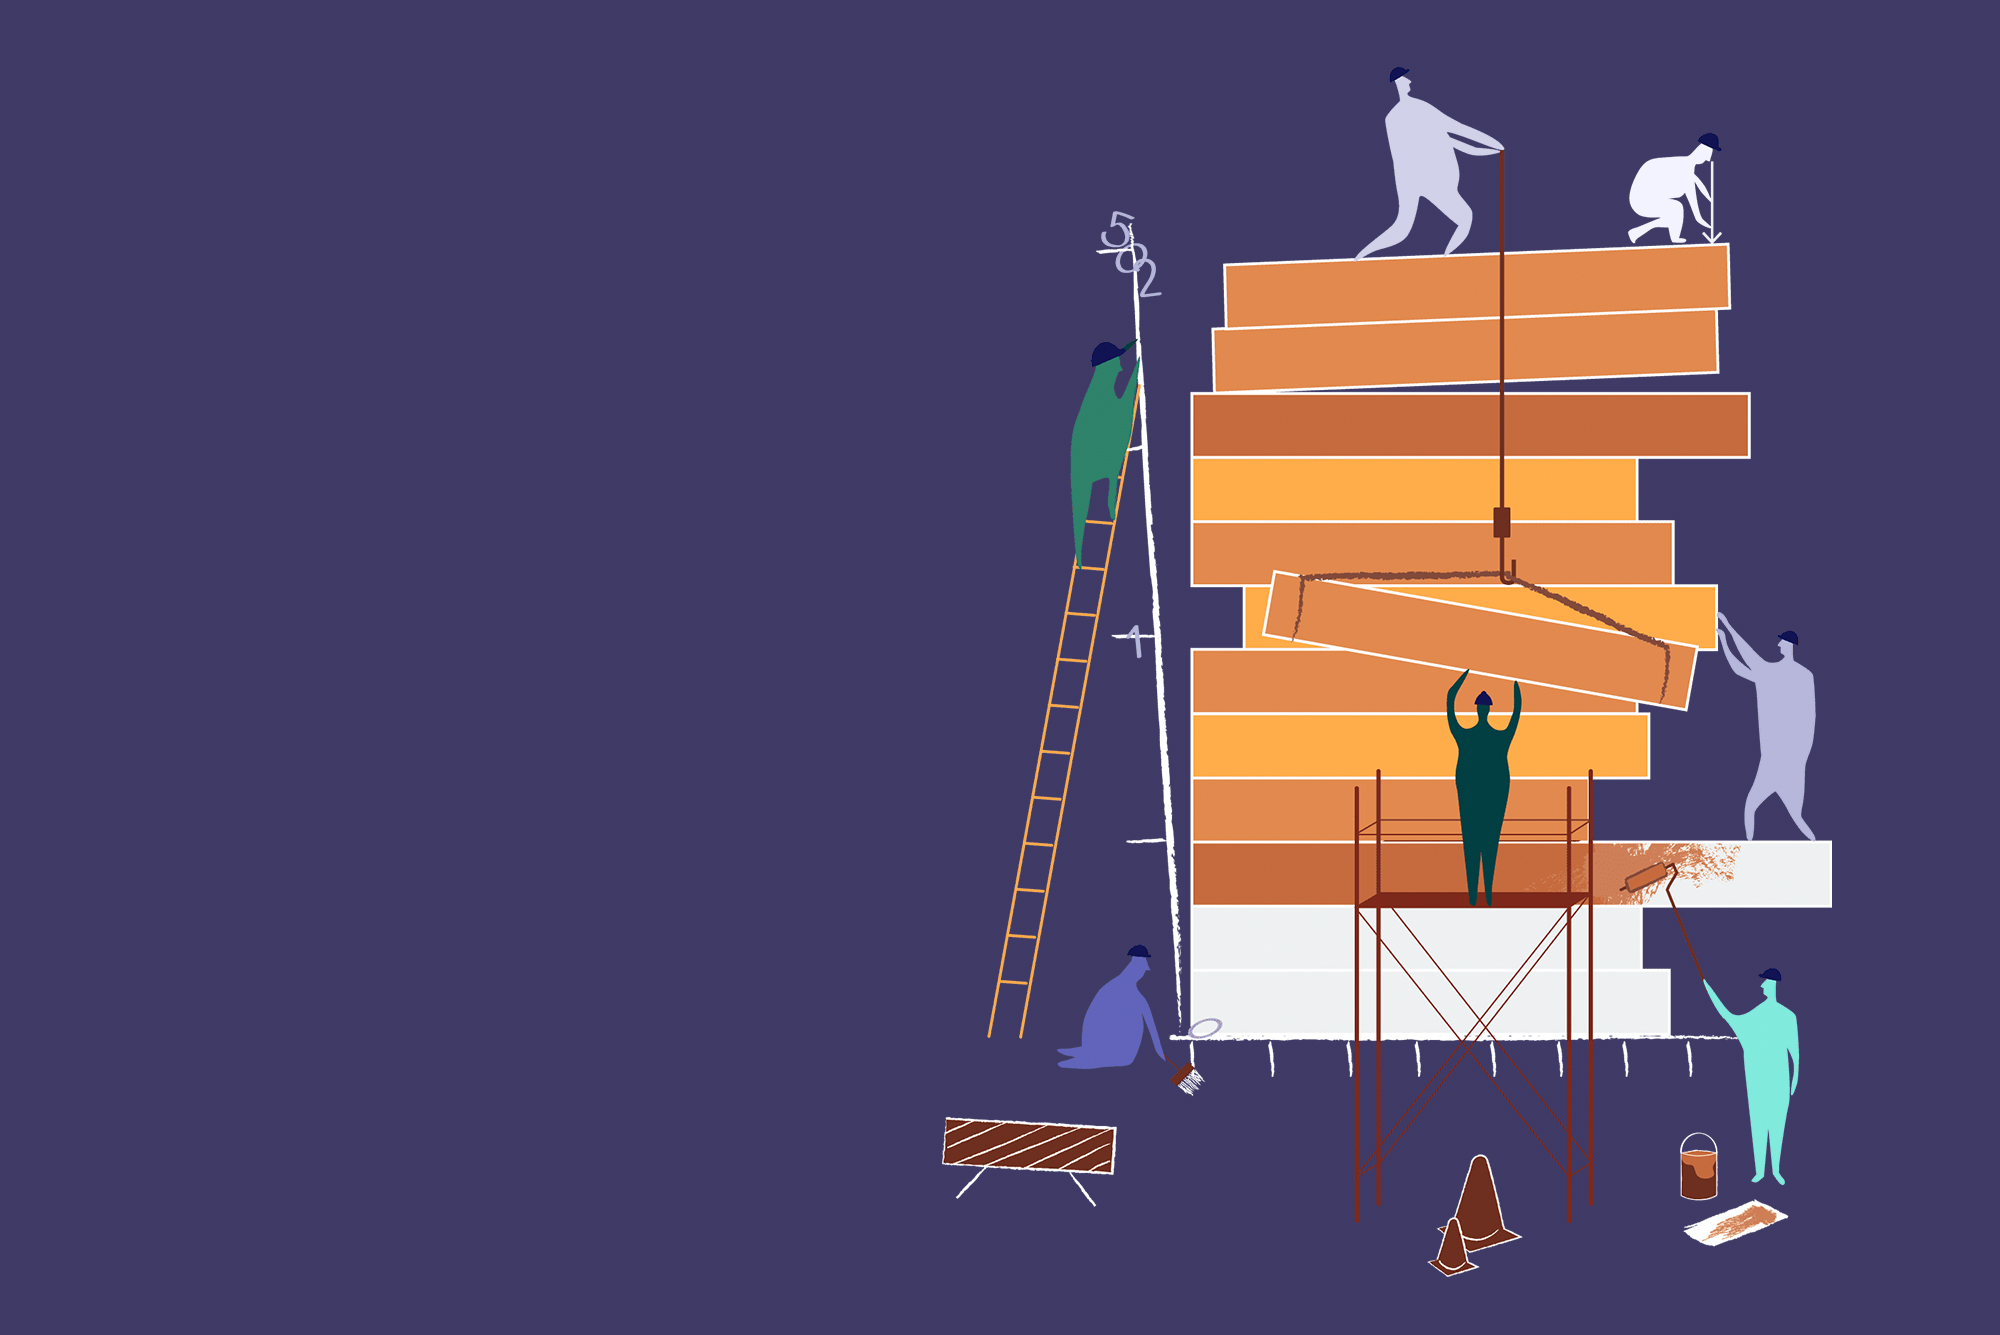 Illustration of figures stacking gray and brown beams on top of each other using ladders, pulleys, scaffolding, and team work. Background is dark purple.